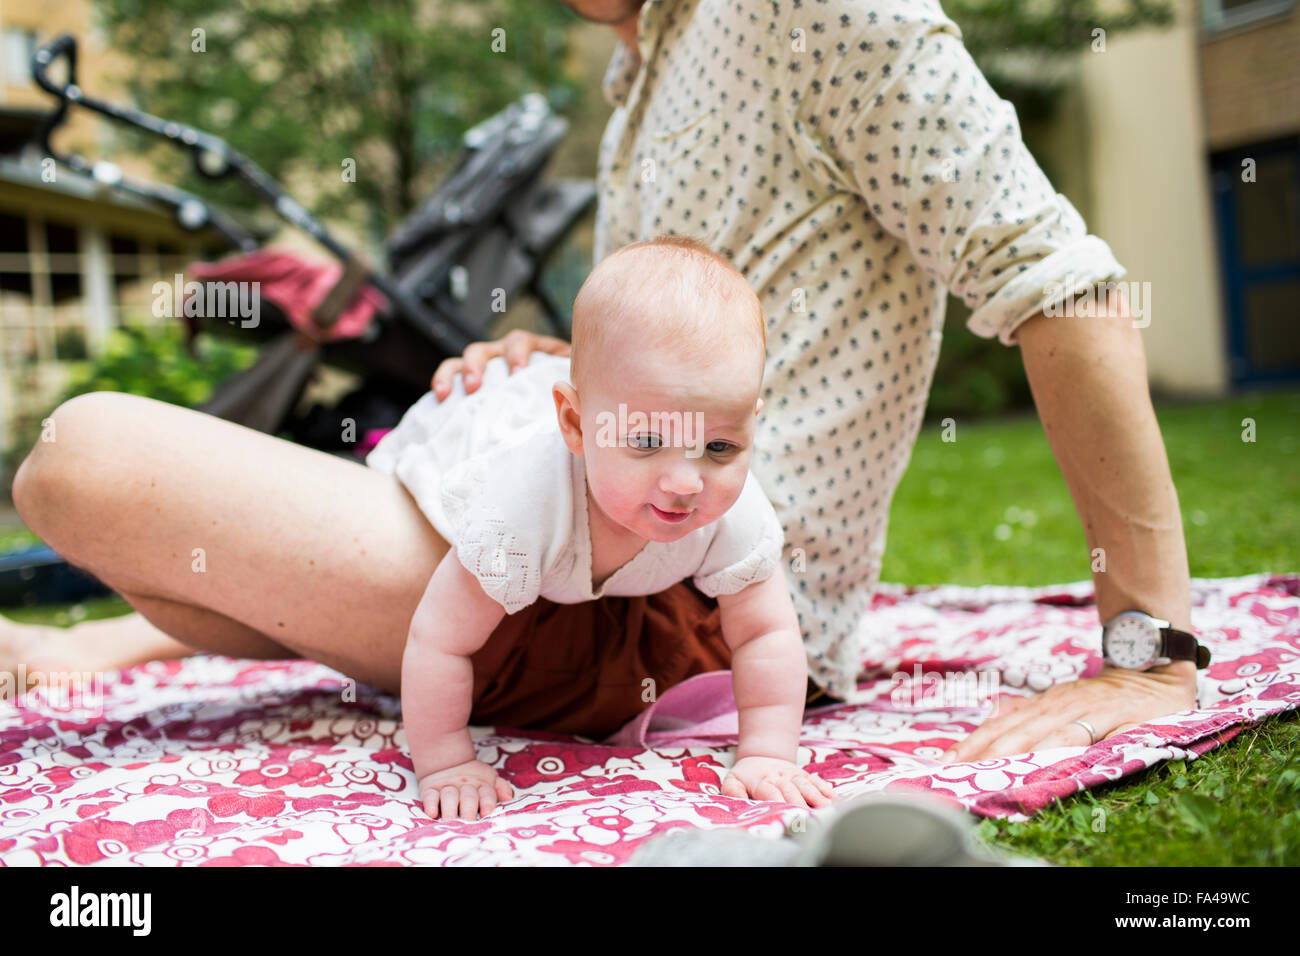 Baby girl lying on father's lap at yard - Stock Image